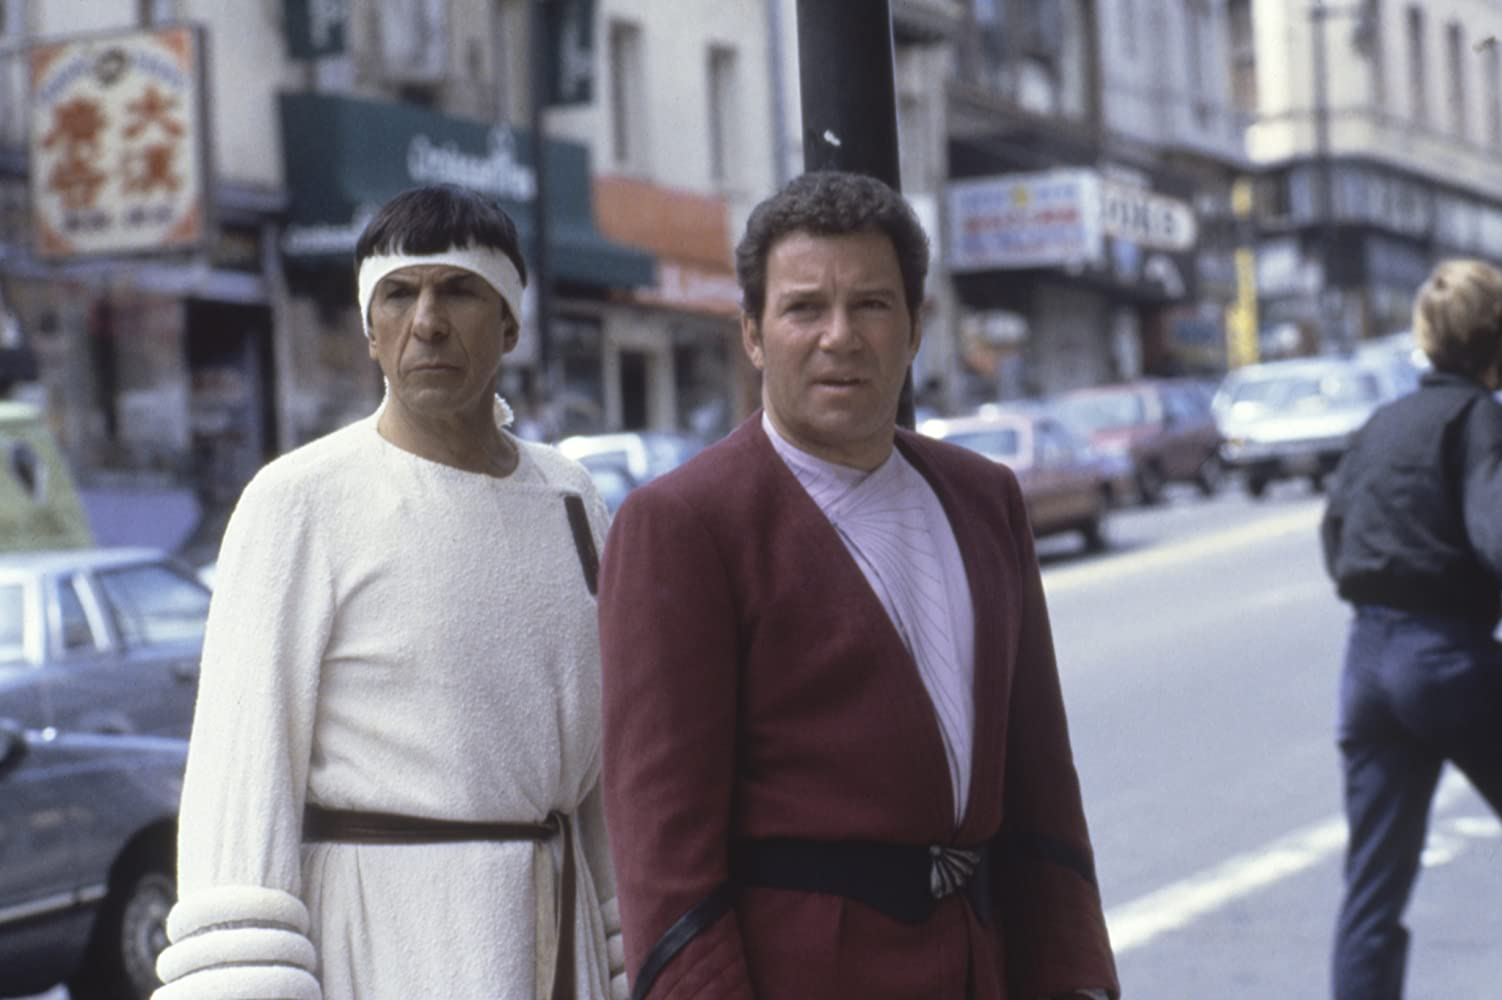 Leonard Nimoy and William Shatner in Star Trek IV The Voyage Home 1986